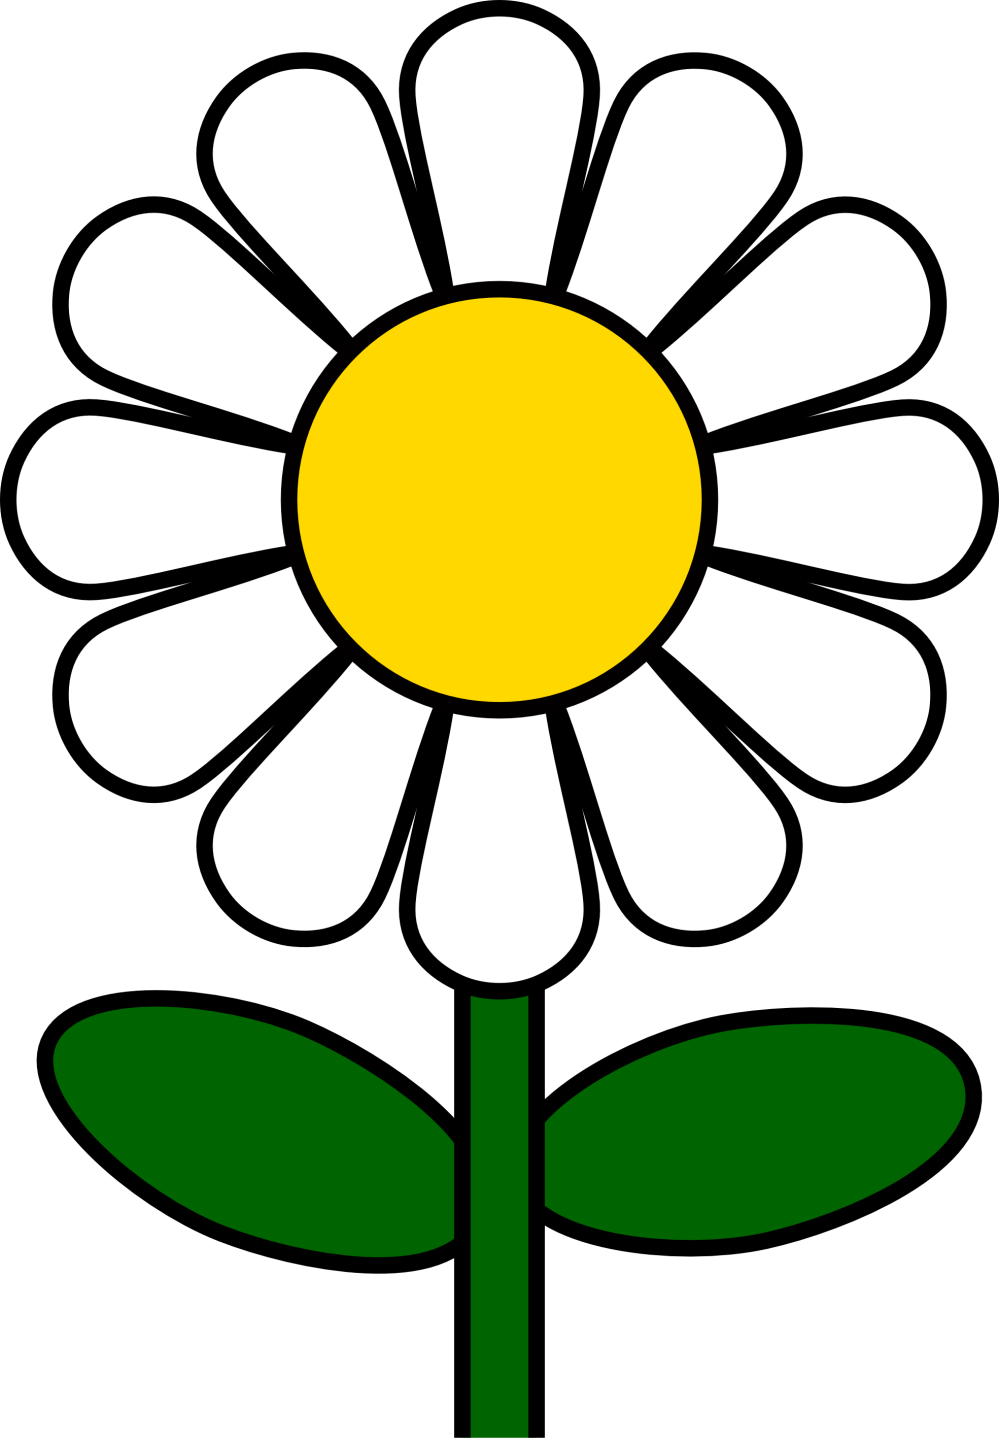 medium resolution of daisy flower clip art clipart library free clipart images